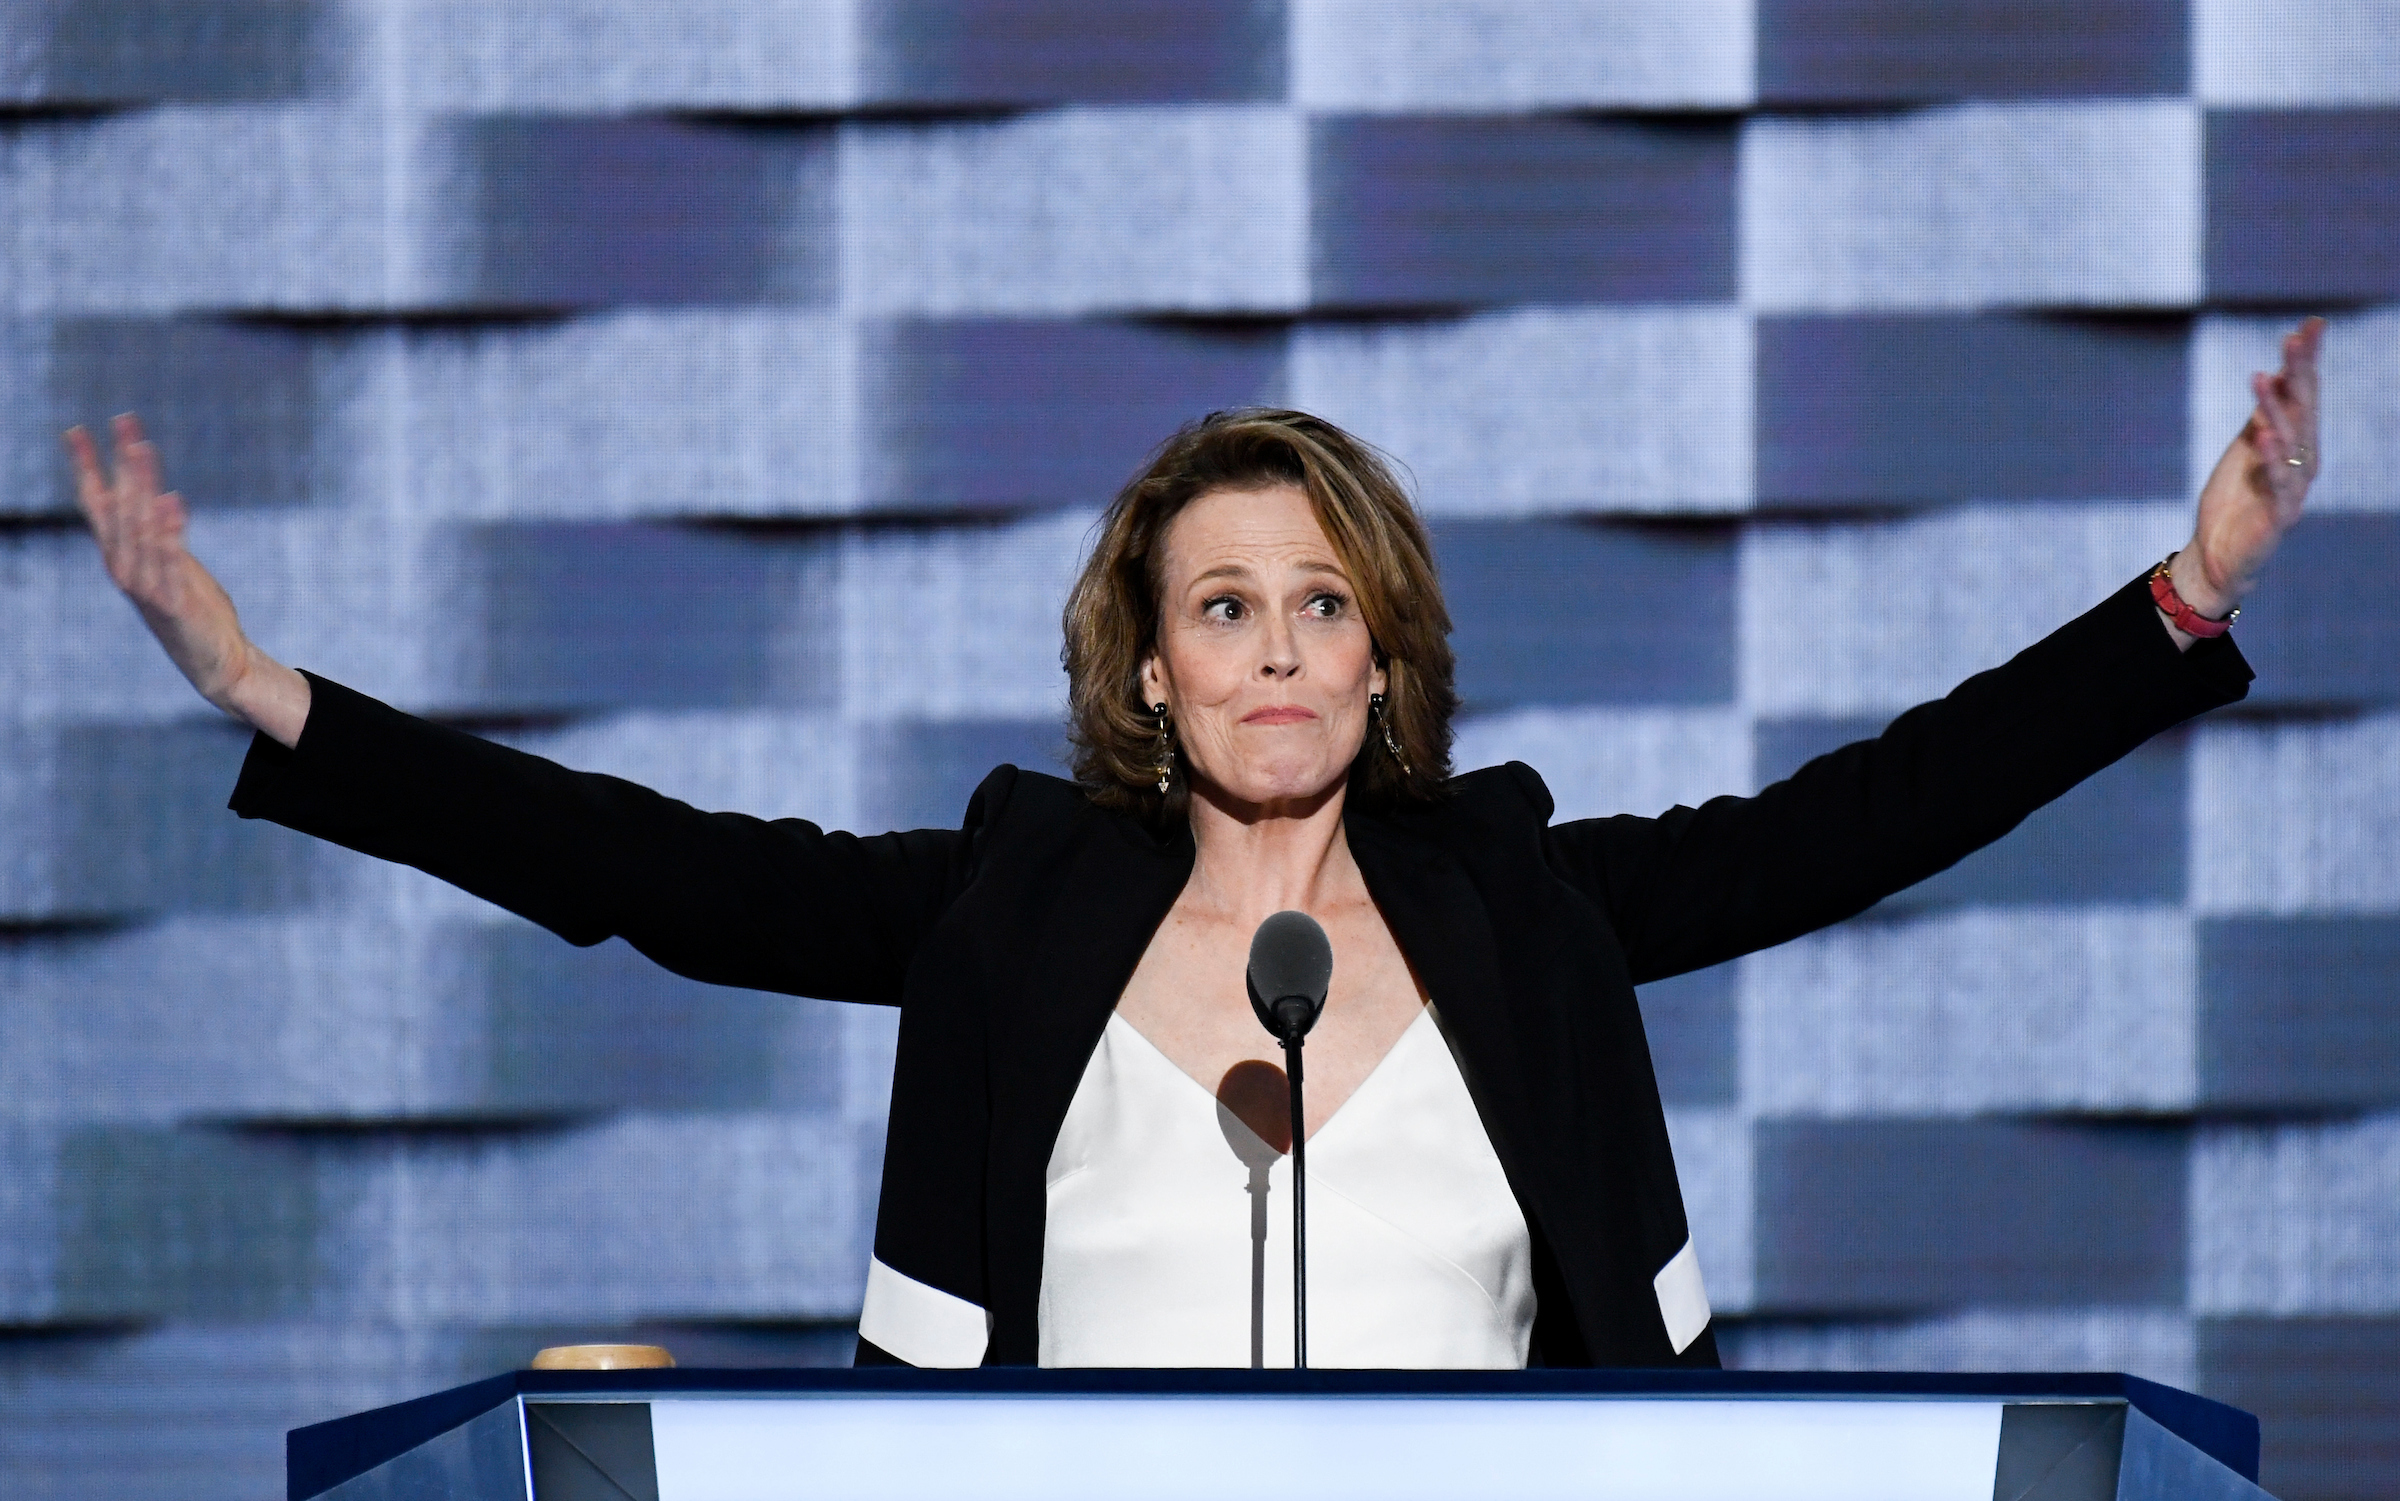 UNITED STATES - JULY 27: Actress Sigourney Weaver speaks at the Democratic National Convention in Philadelphia on Wednesday, July 27, 2016. (Photo By Bill Clark/CQ Roll Call)